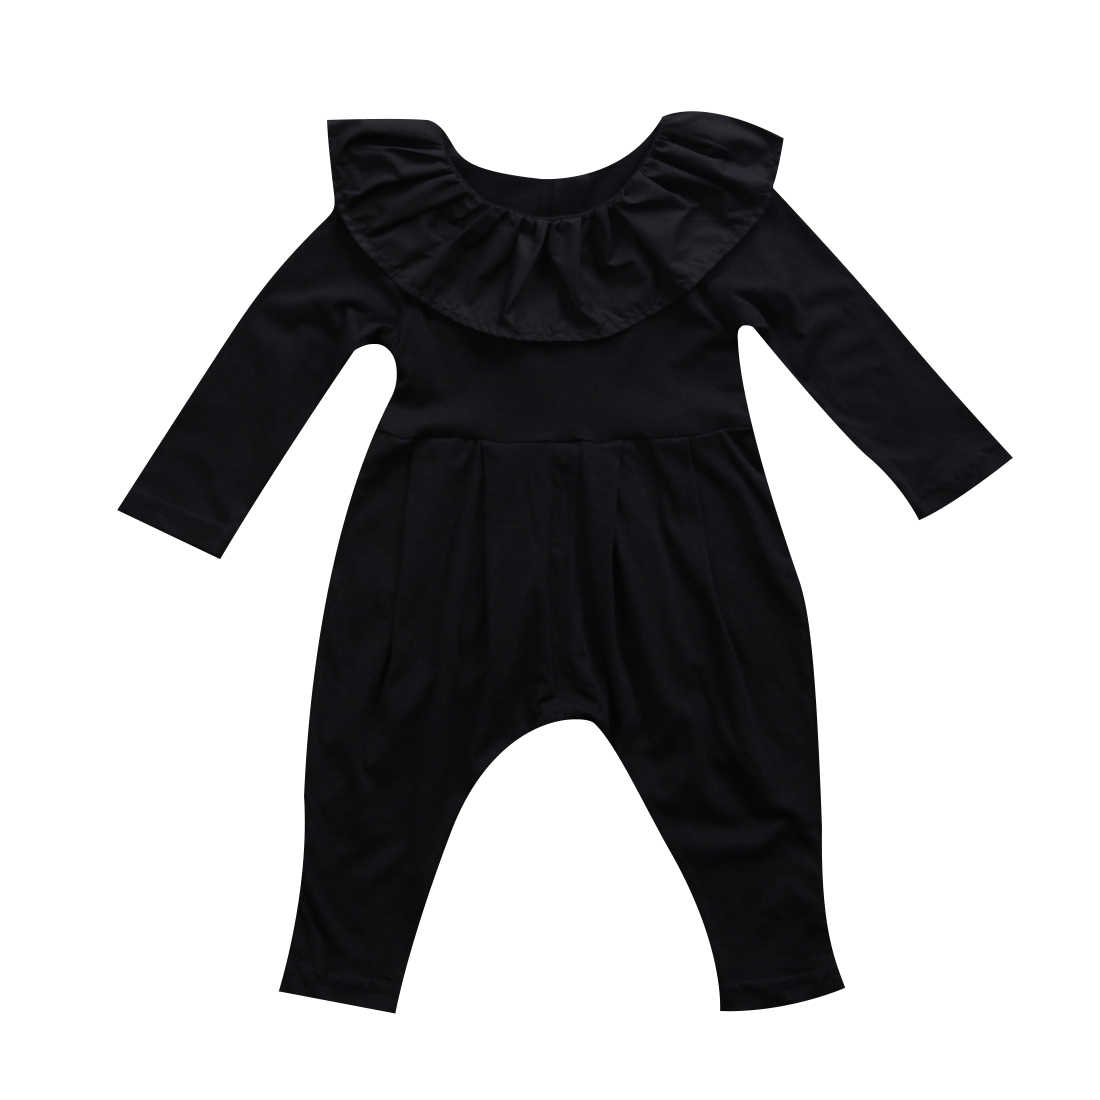 36ac5d1c73e7 2018 Newest Brand Newborn Baby Girls Ruffle Black Solid Long Sleeve Vintage  Style Romper Clothes 3